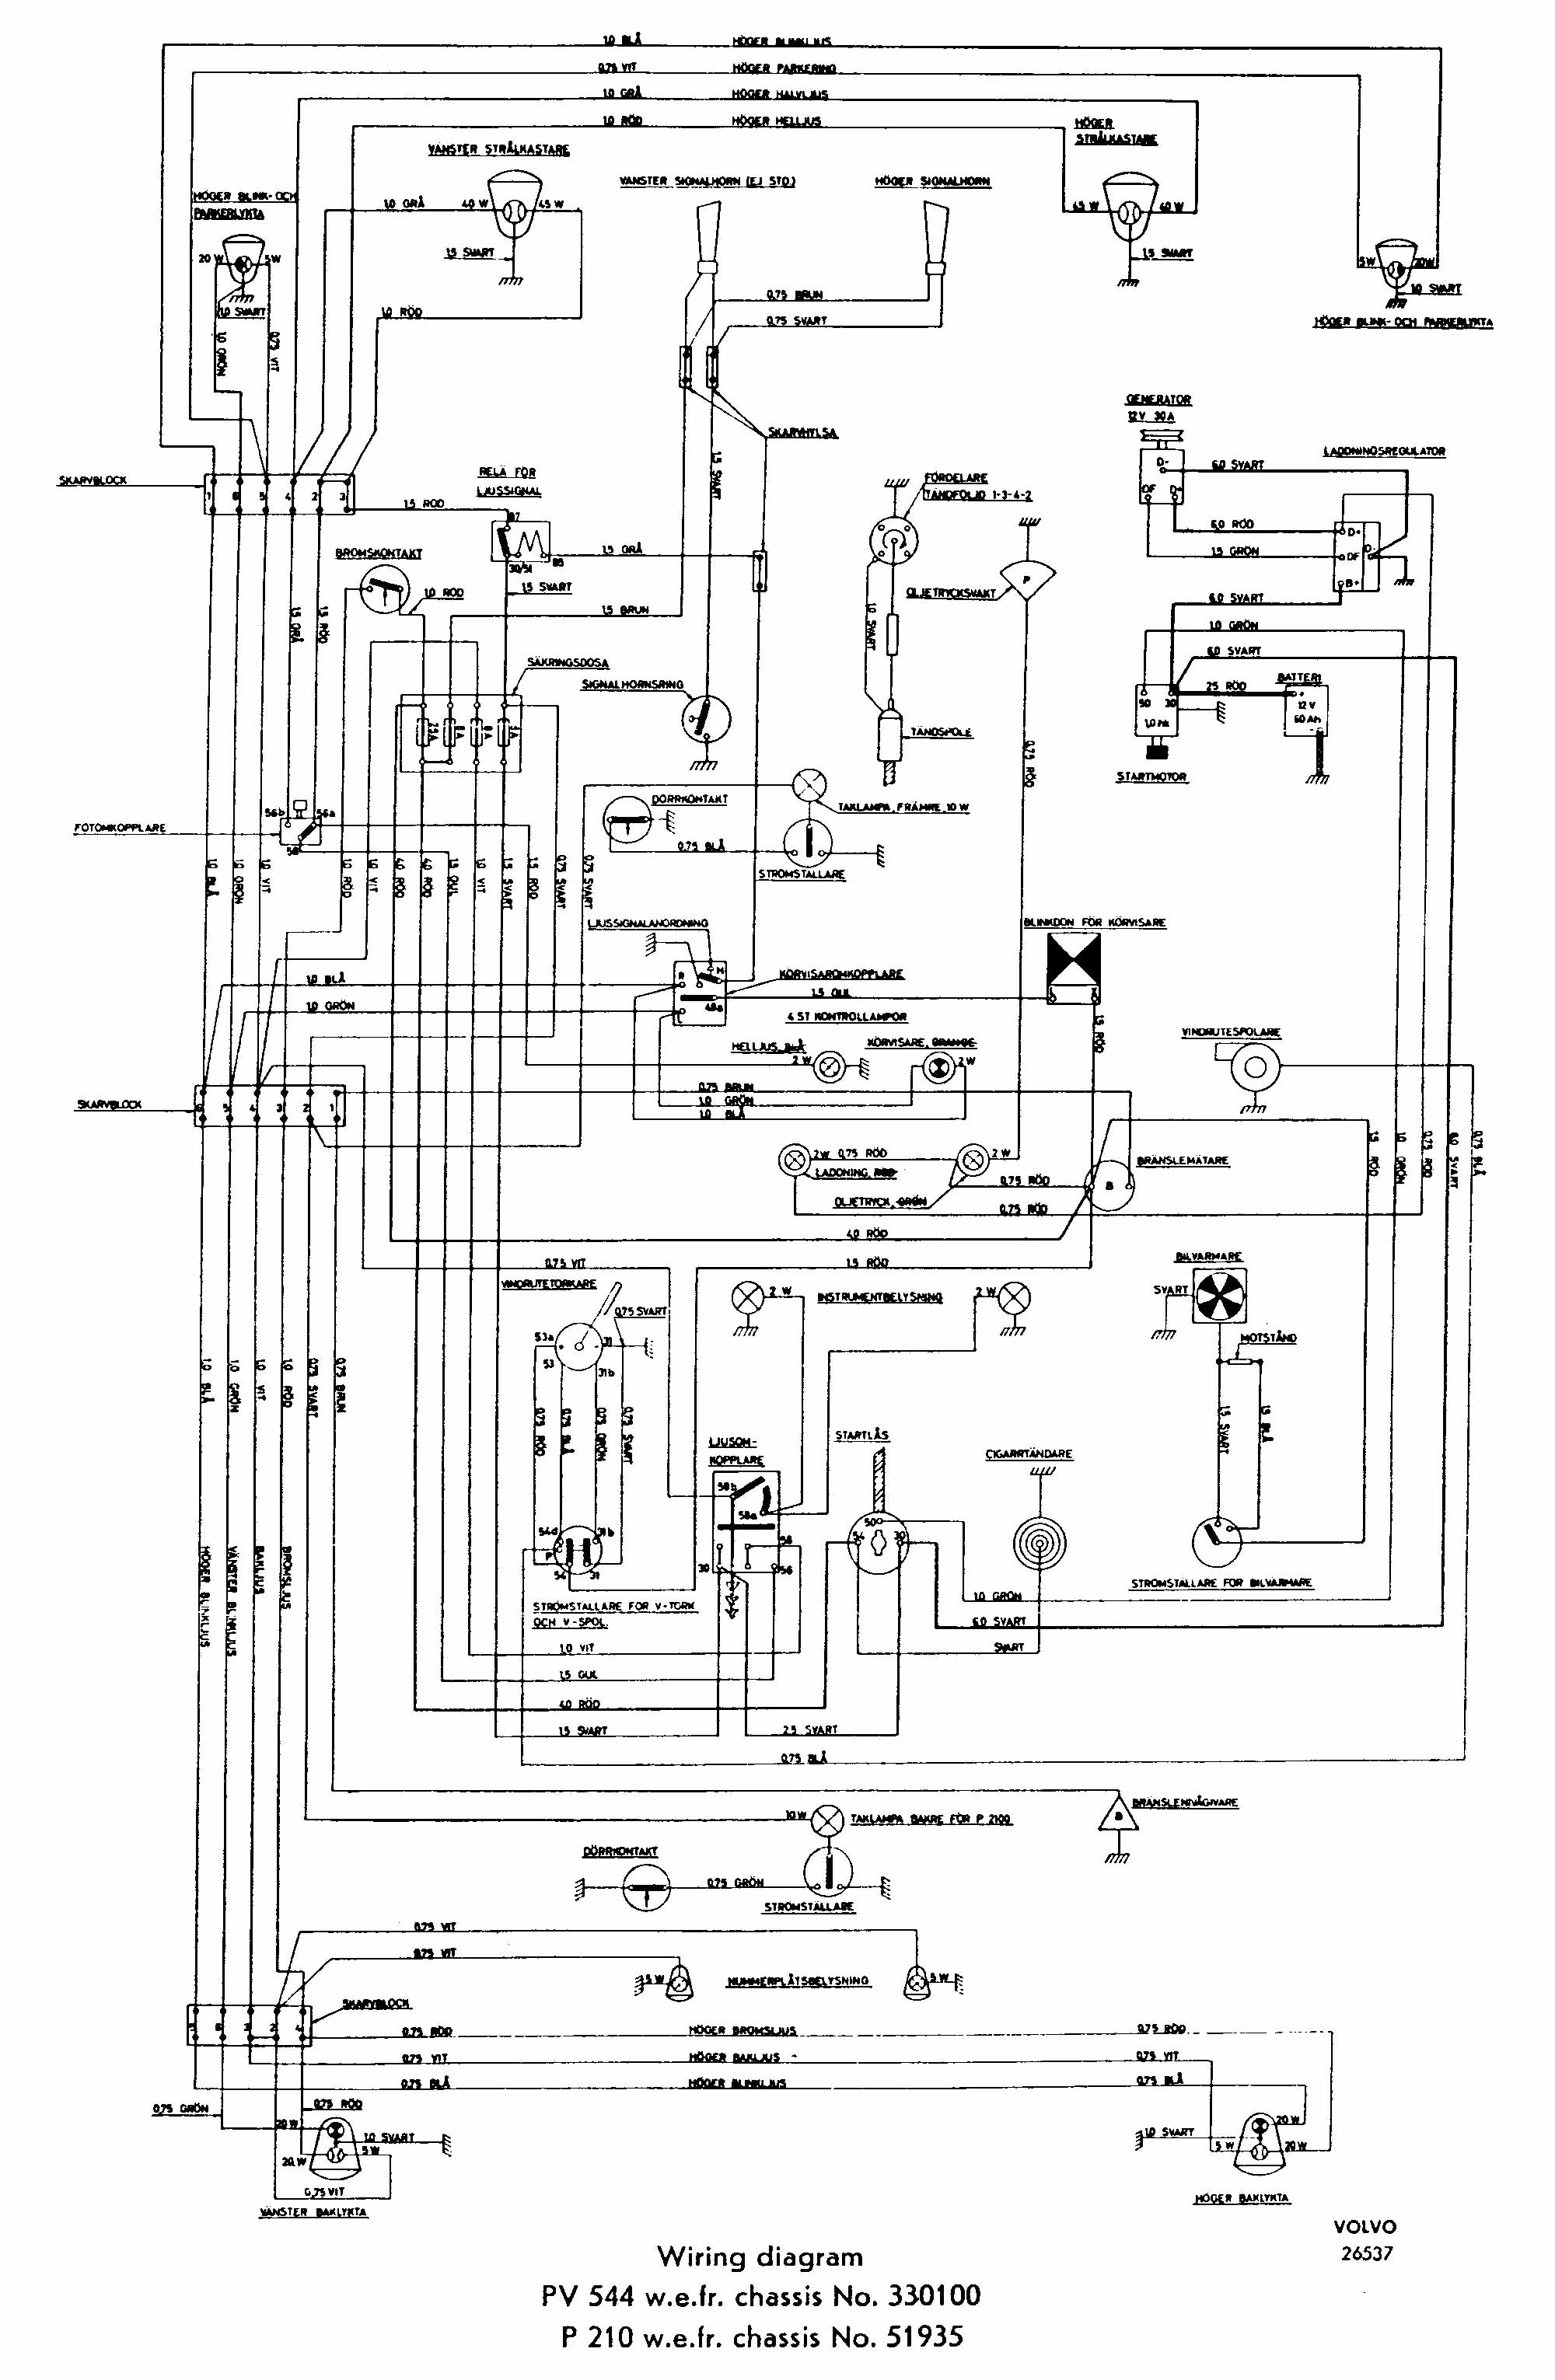 76003 besides LE1r 5127 moreover 2016 Freightliner Fl50 as well Universal Ignition Switch Wiring Diagram in addition Car Engine Diagram And Parts. on gmc fuel pump wiring diagram